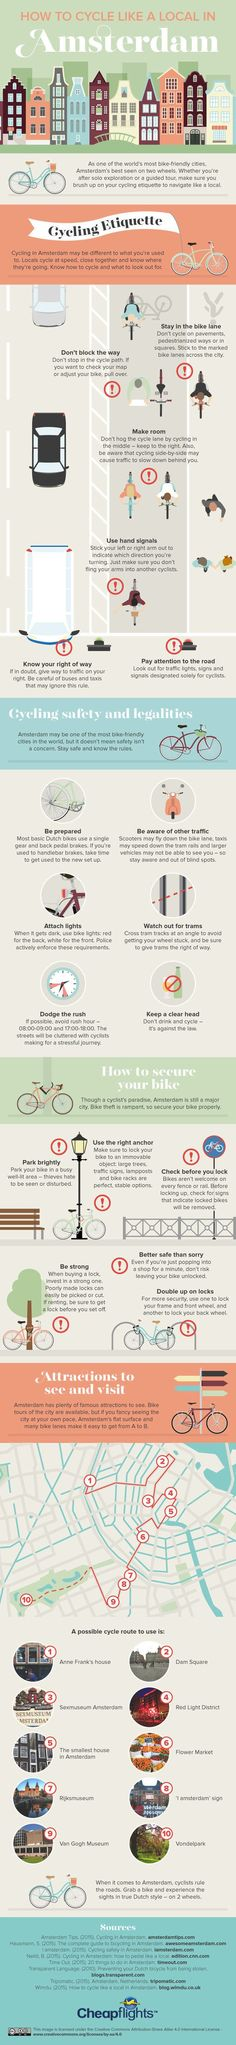 How to survive biking in Amsterdam (or really any major city)